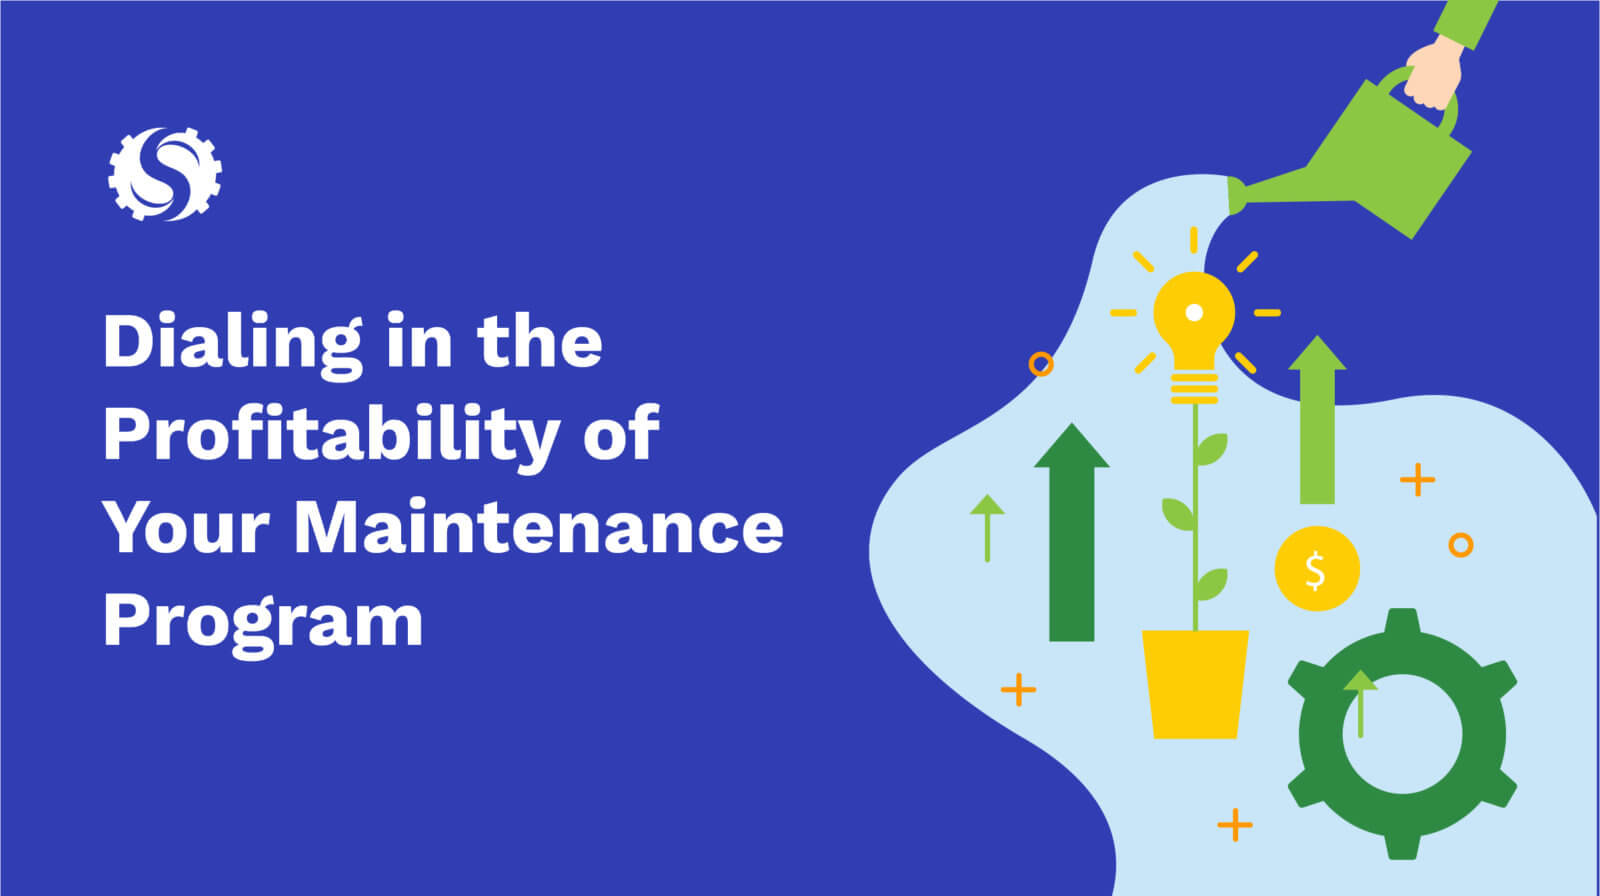 Dialing in the profitability of your maintenance program